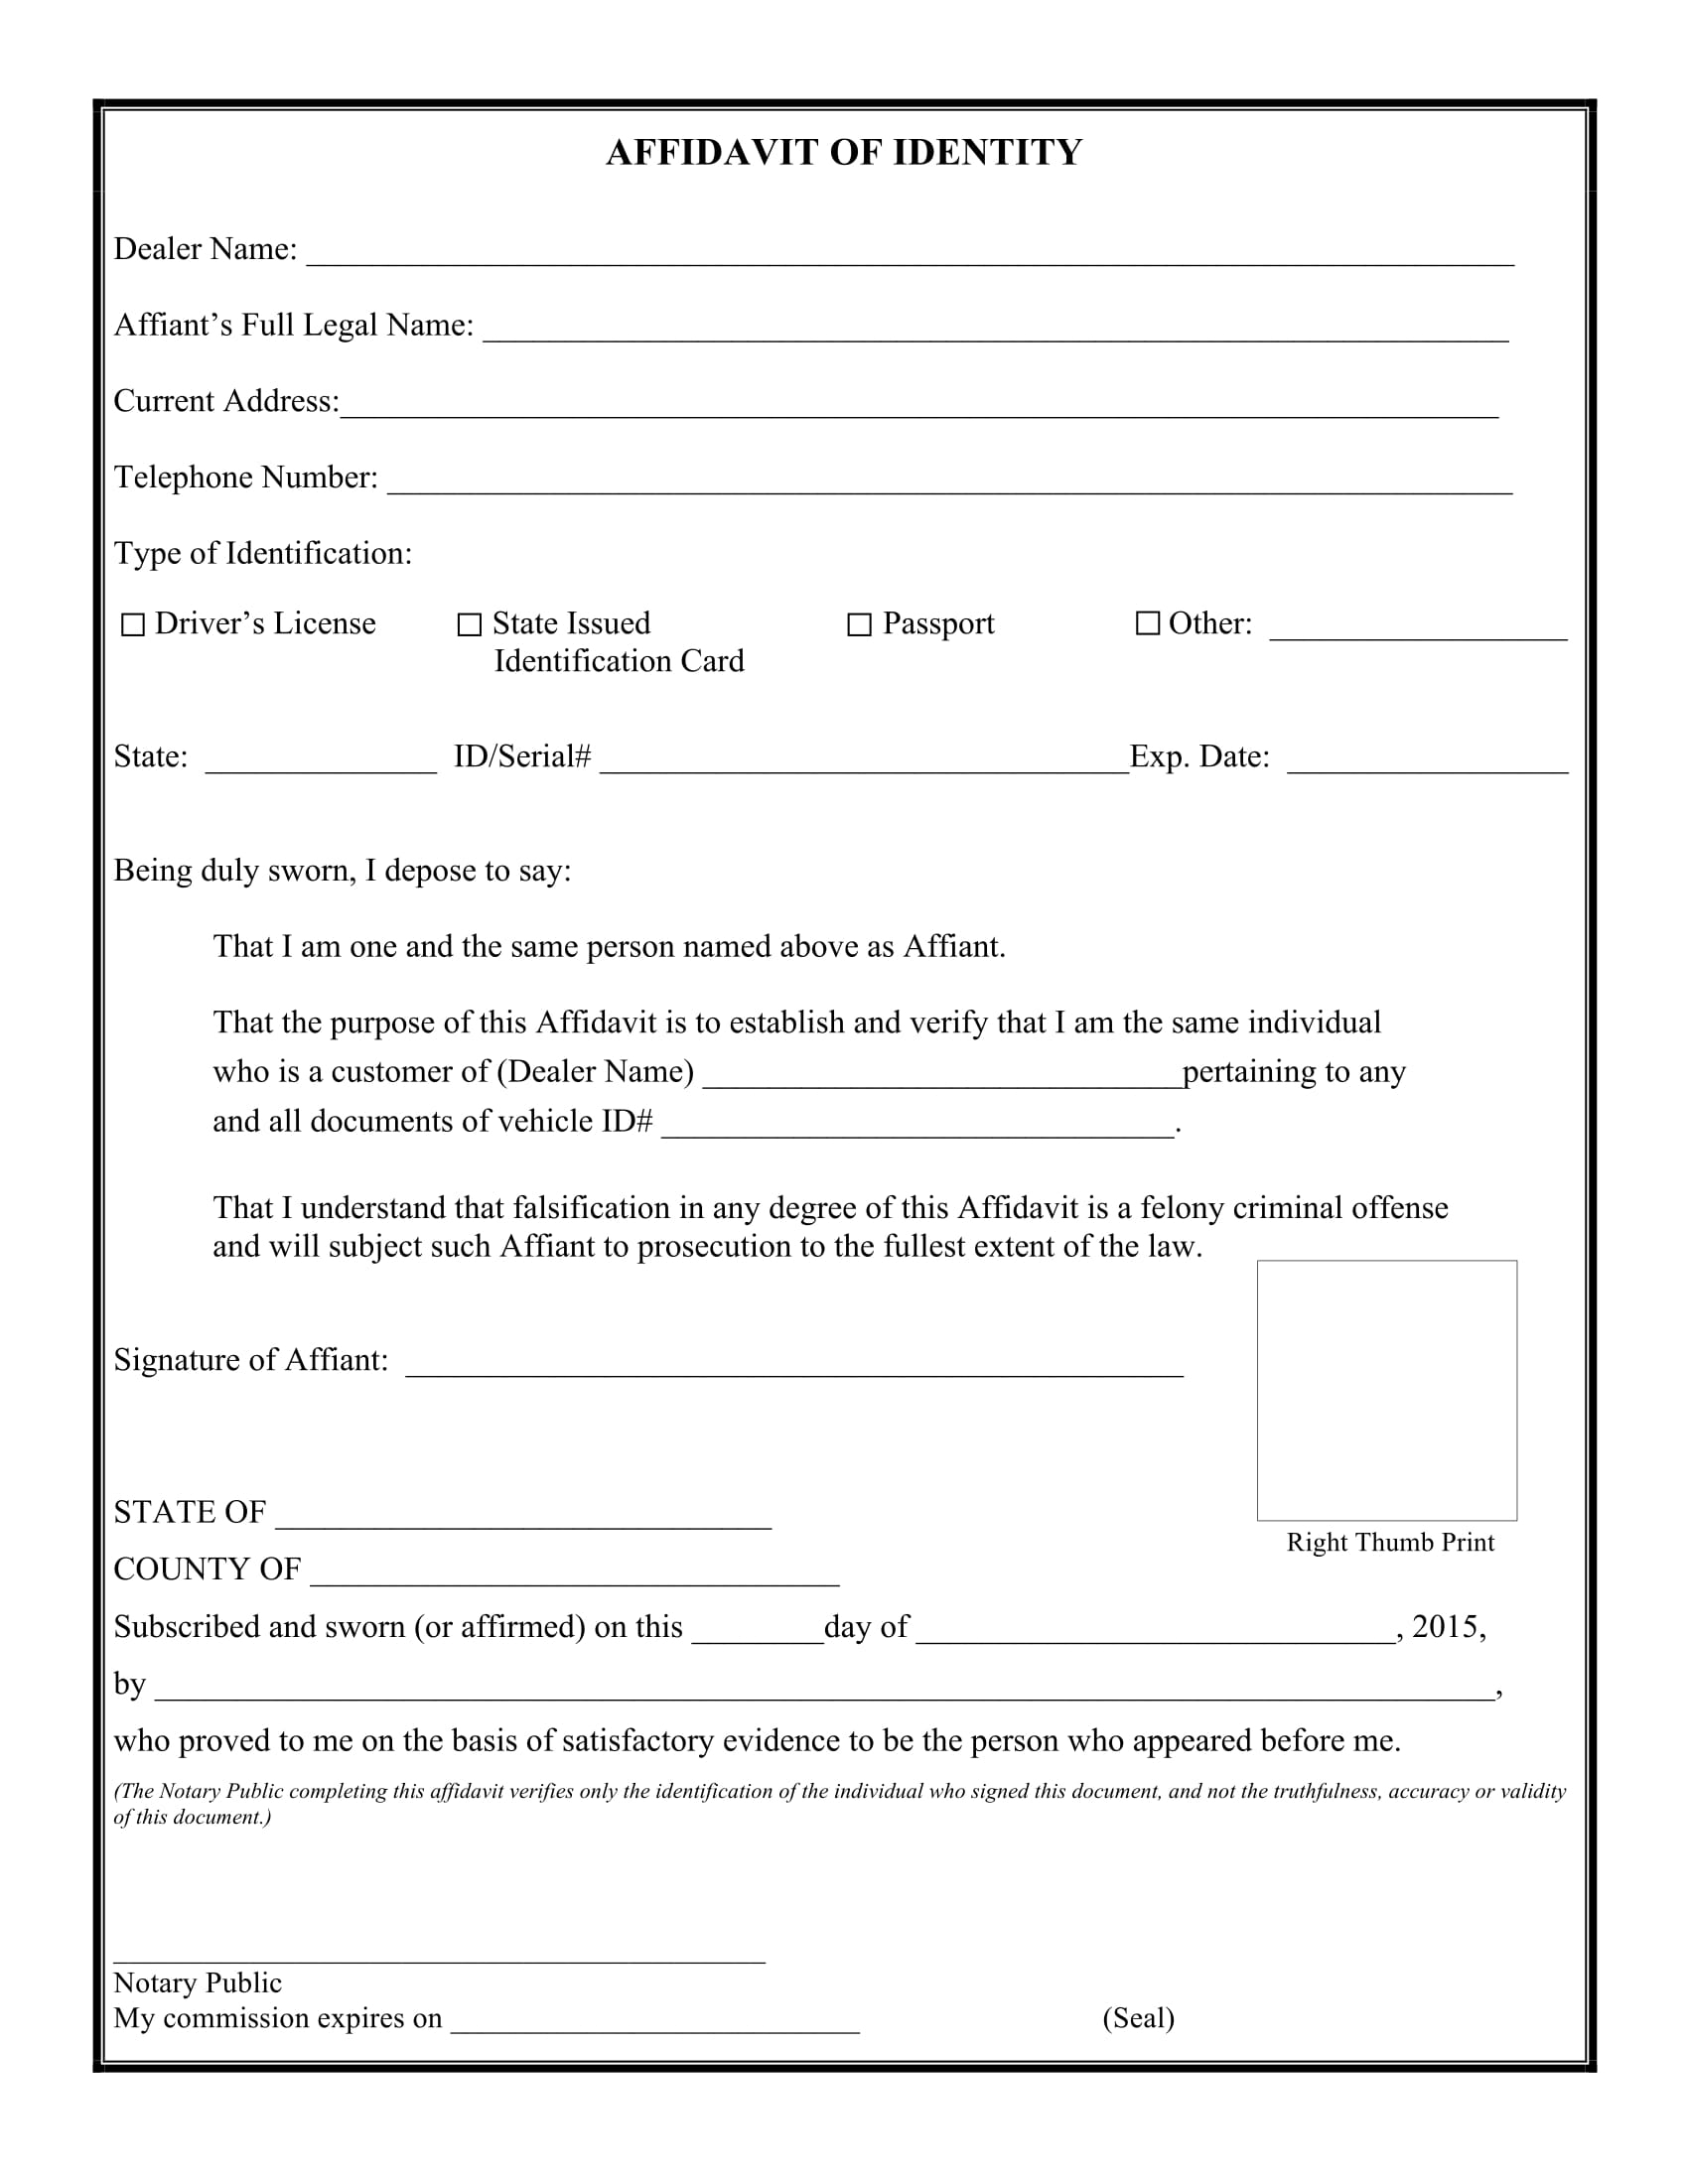 bill of sale alberta what part of the registration document